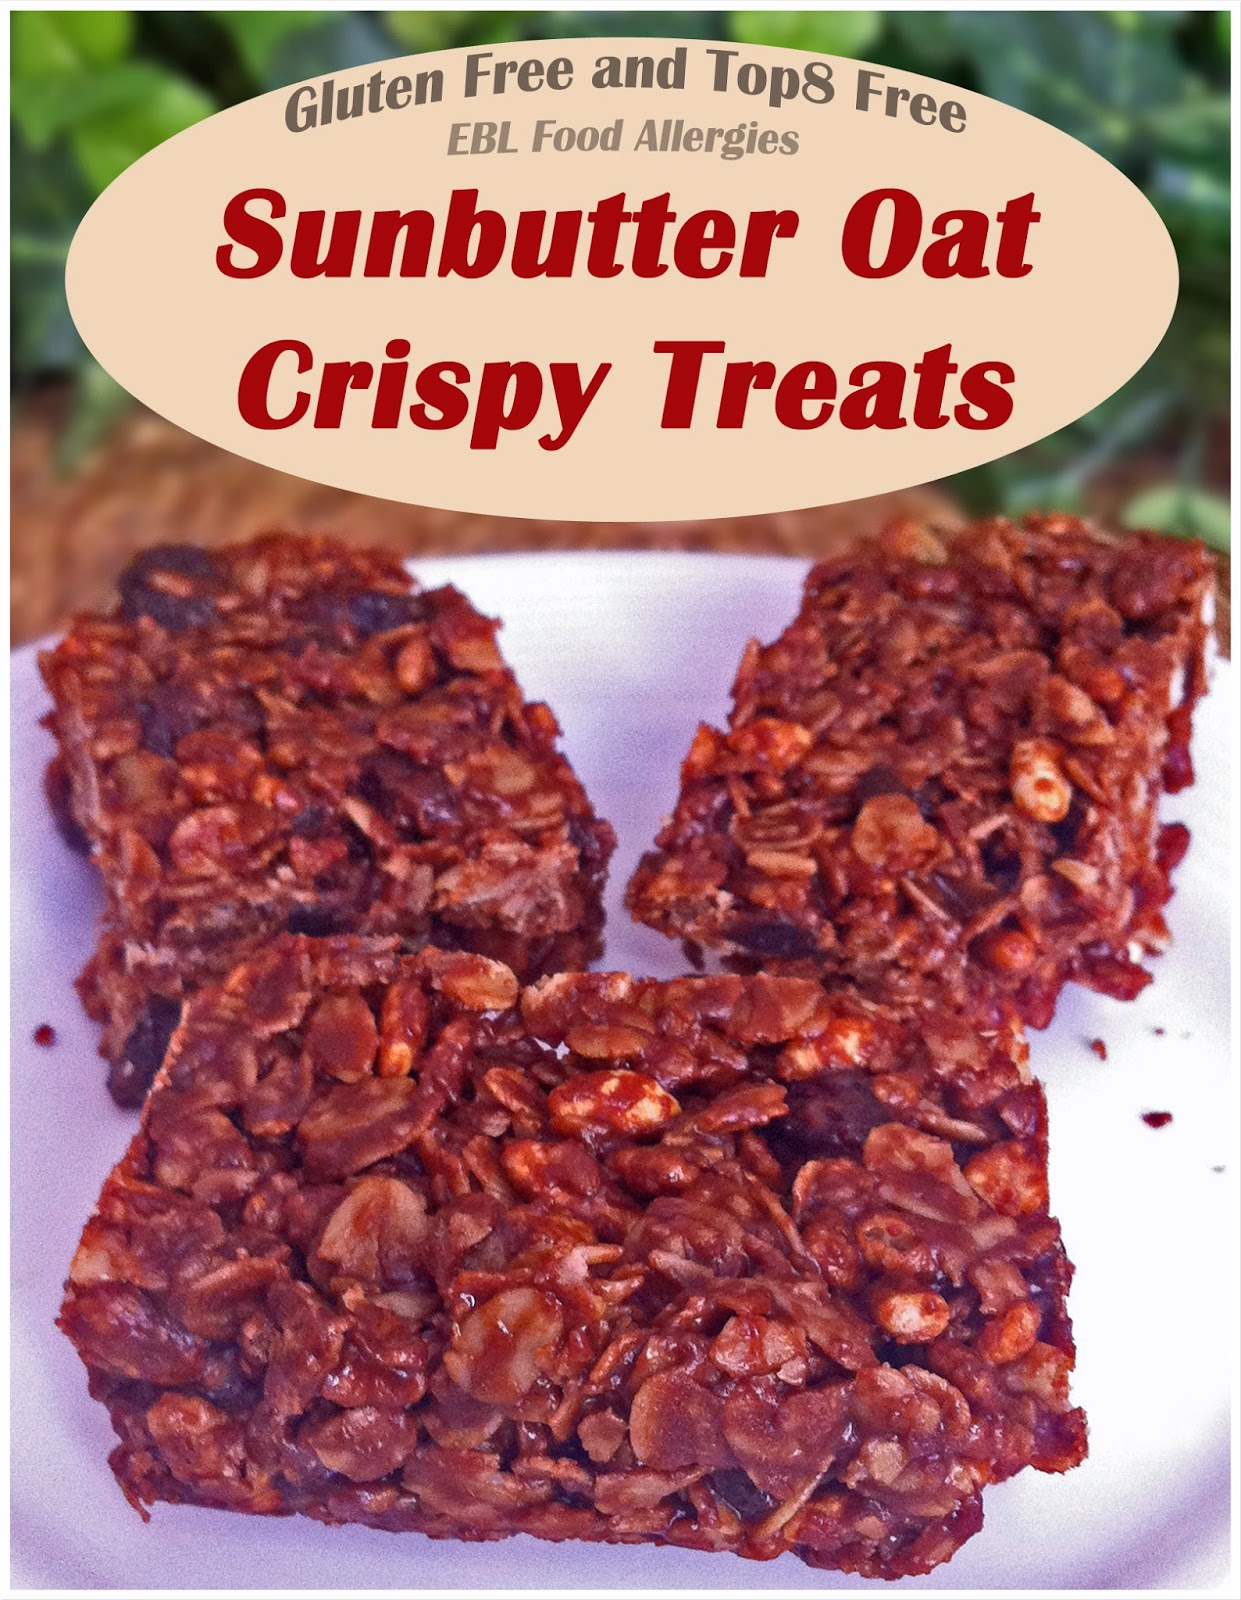 EBL Food Allergies: Sunbutter Oat Crispy Treats -top8free gluten-free corn-free